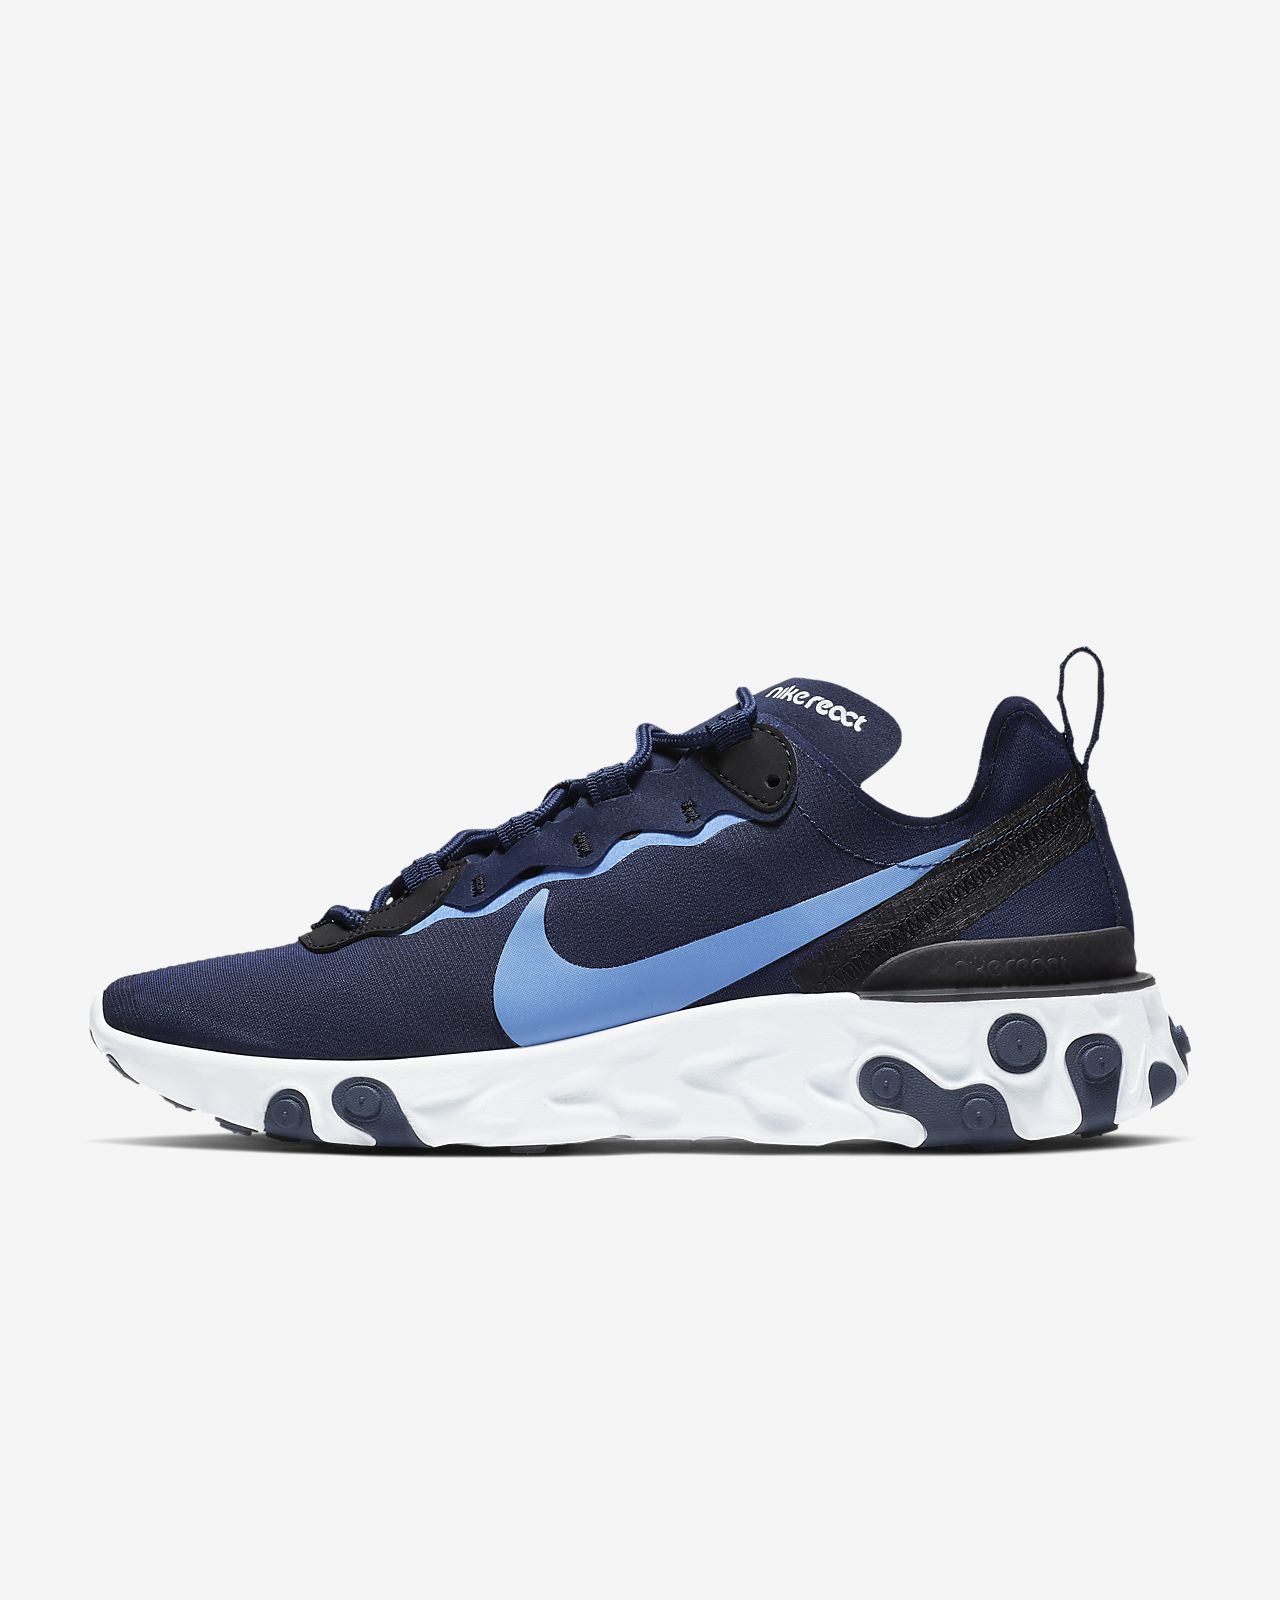 7a2f4e81f Nike React Element 55 Men s Shoe. Nike.com